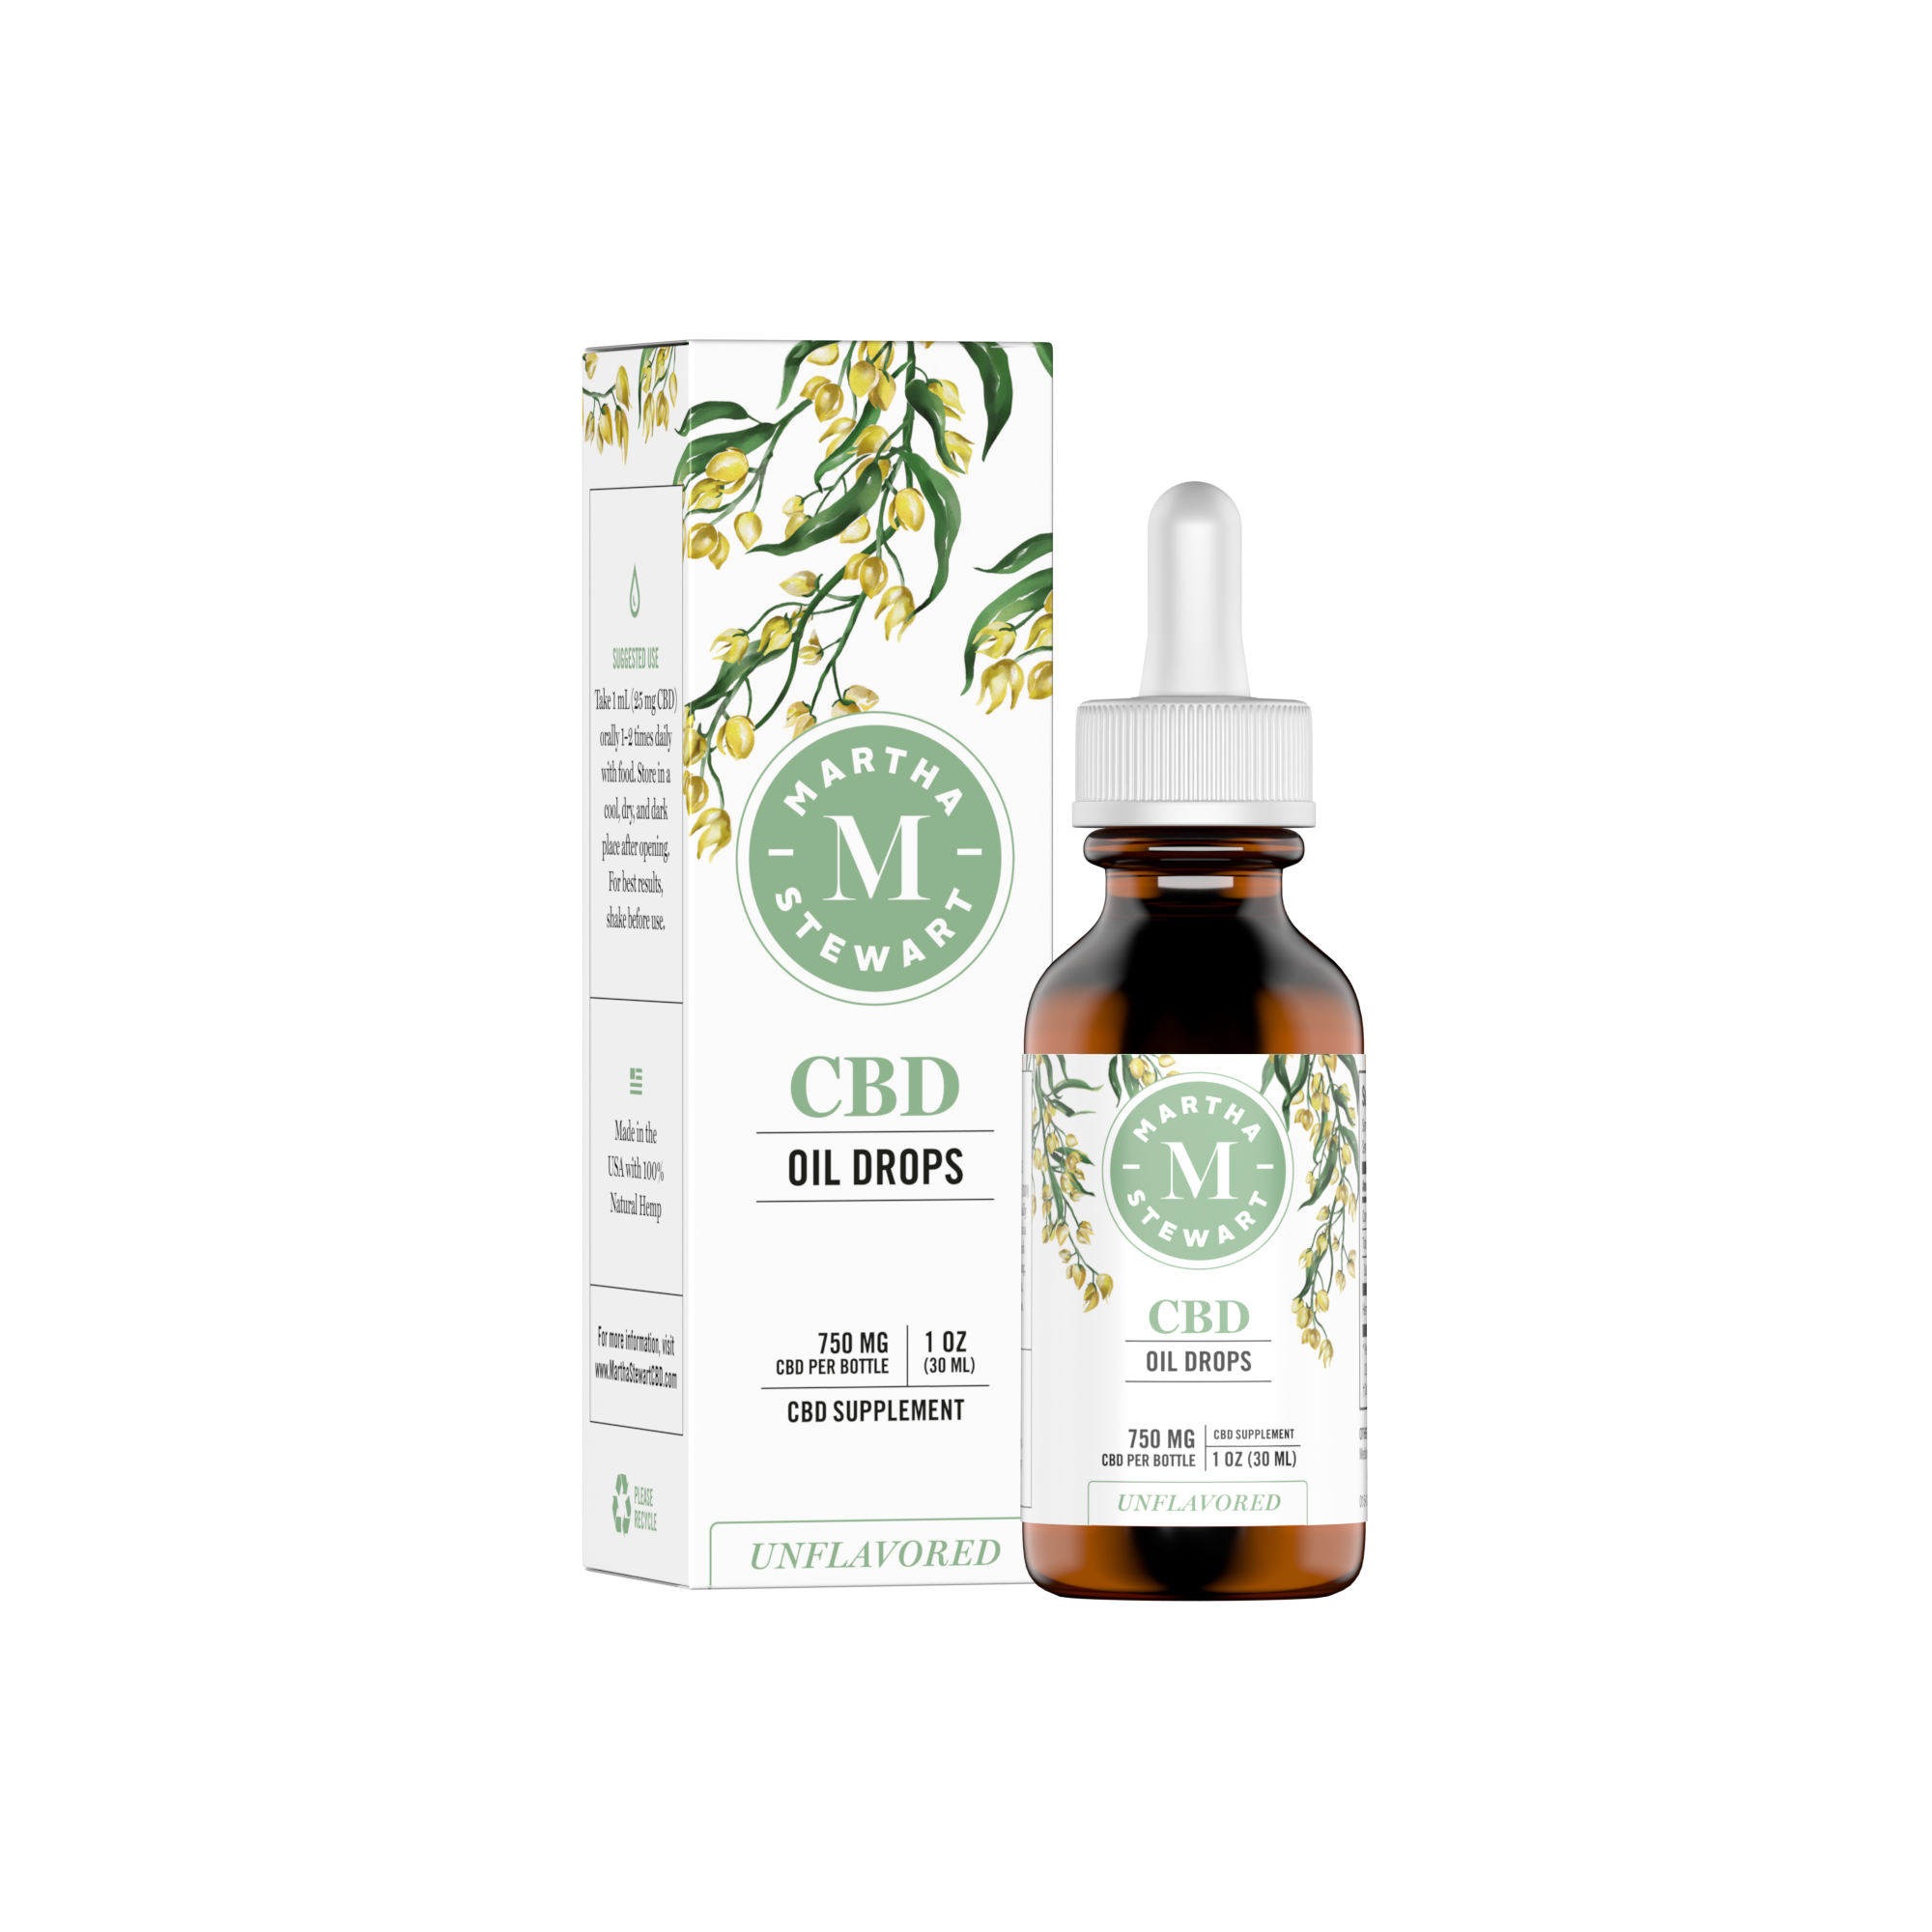 Martha Stewart CBD Unflavored Box Front